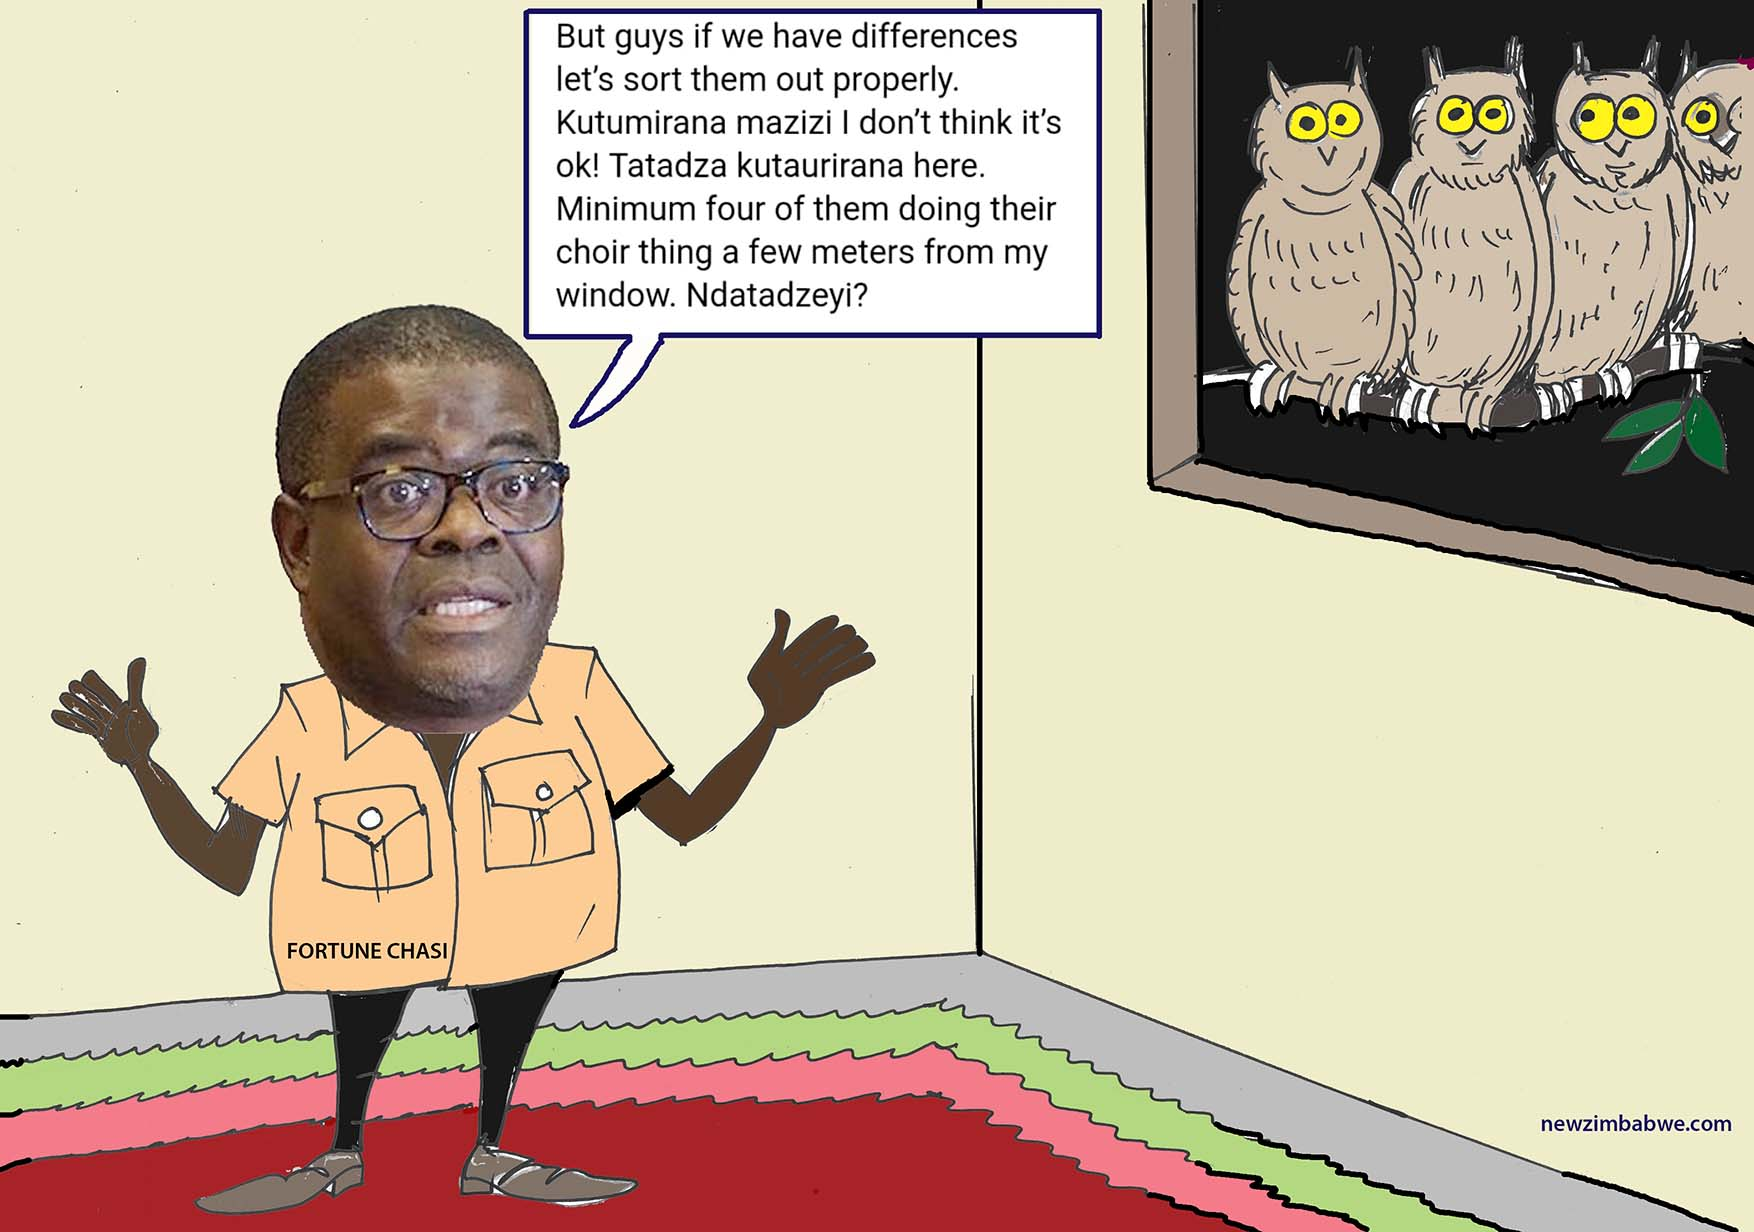 Of Chasi and owls